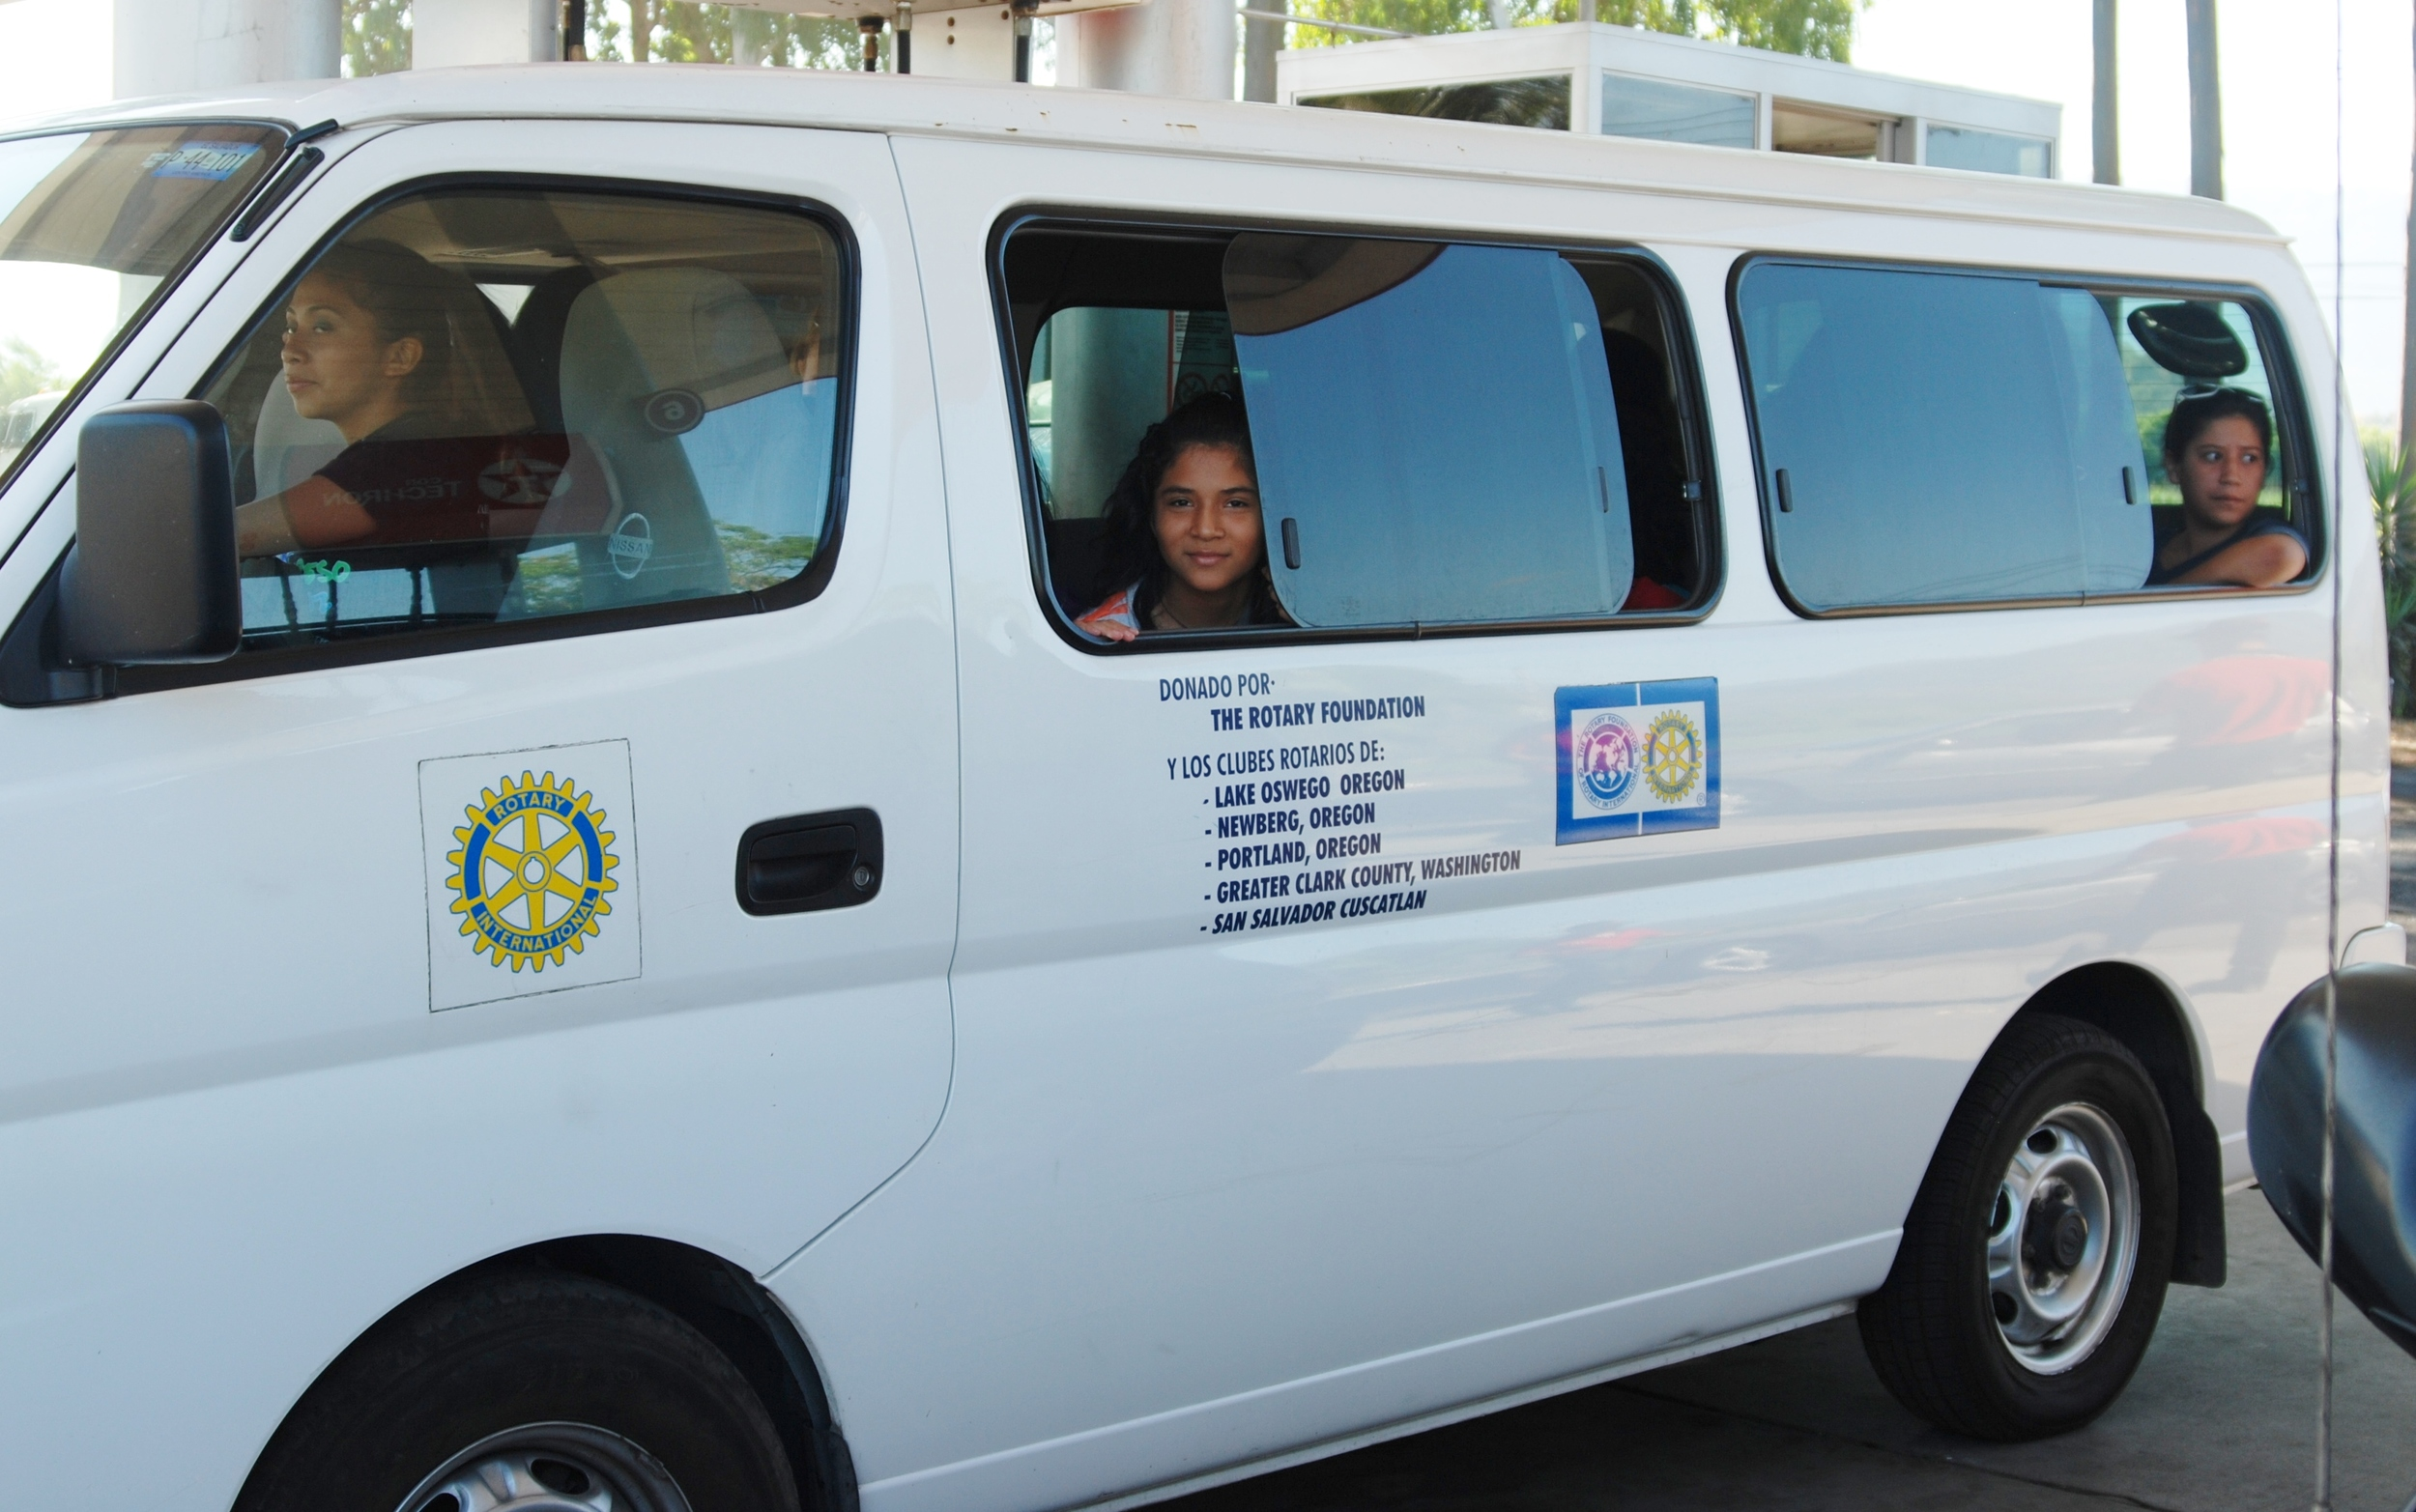 Our 15 Passenger Nissan Urvan has served us faithfully over the last five years. With 29 children, we need one more.